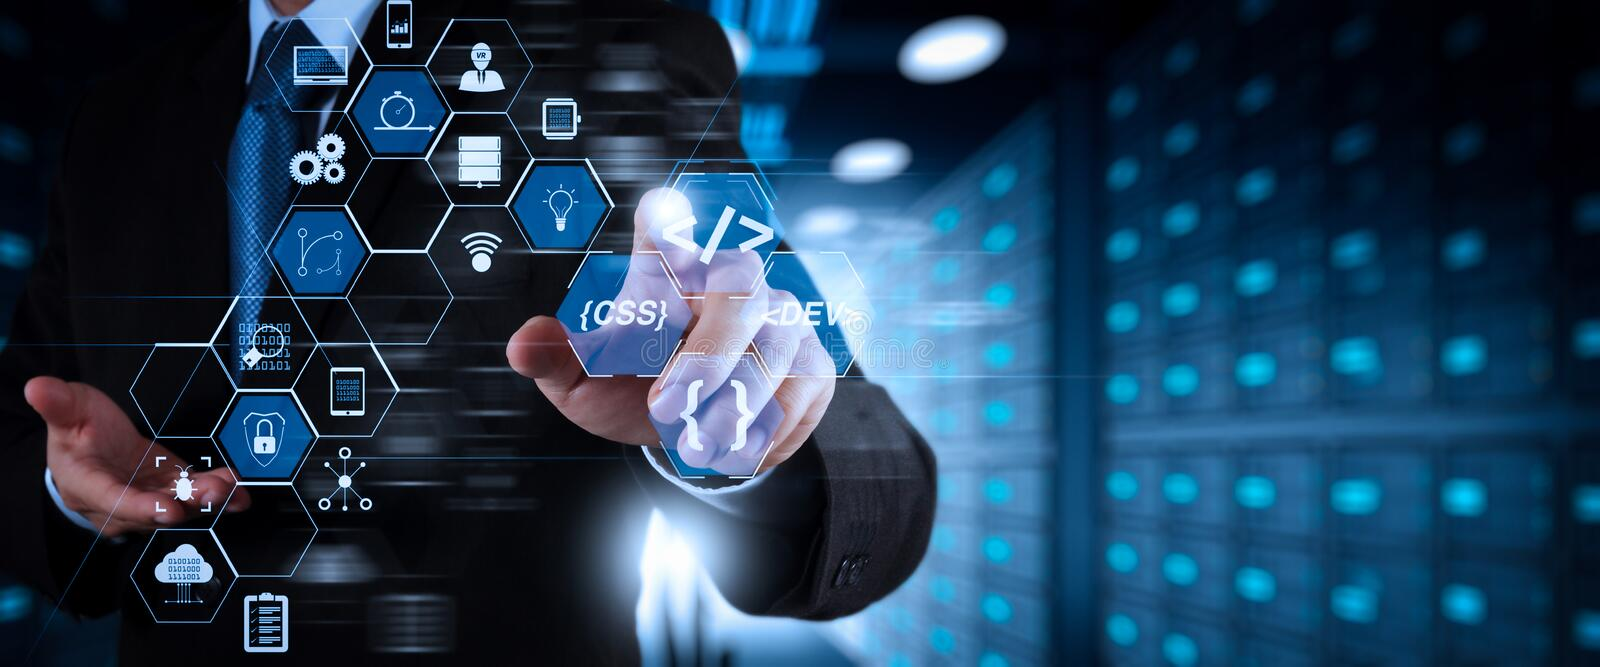 Coding software developer work with augmented reality dashboard computer stock image